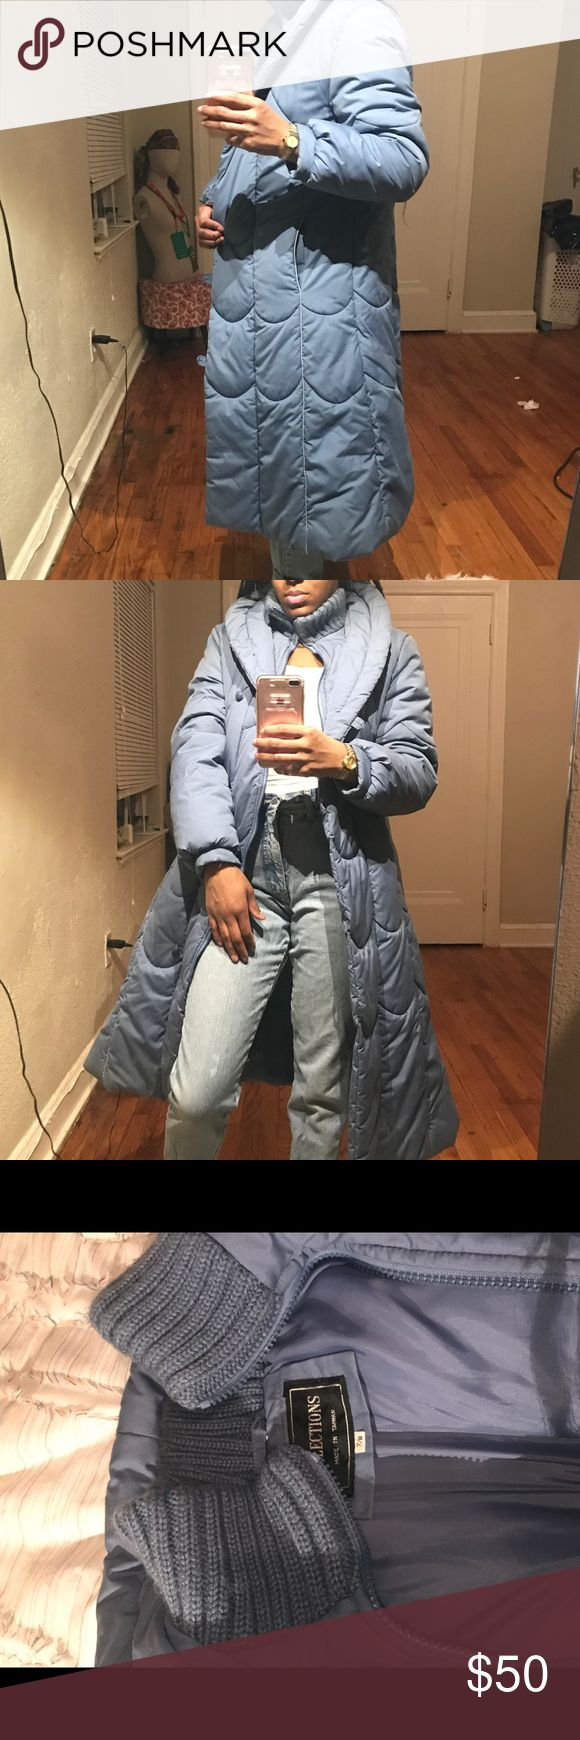 Women's vintage fashion puffer knee length coat Baby blue vintage ladies fashion knee length puffer coat. The coat zips and fastens and has a very distinct cloth turtle neck collar. Jackets & Coats Puffers